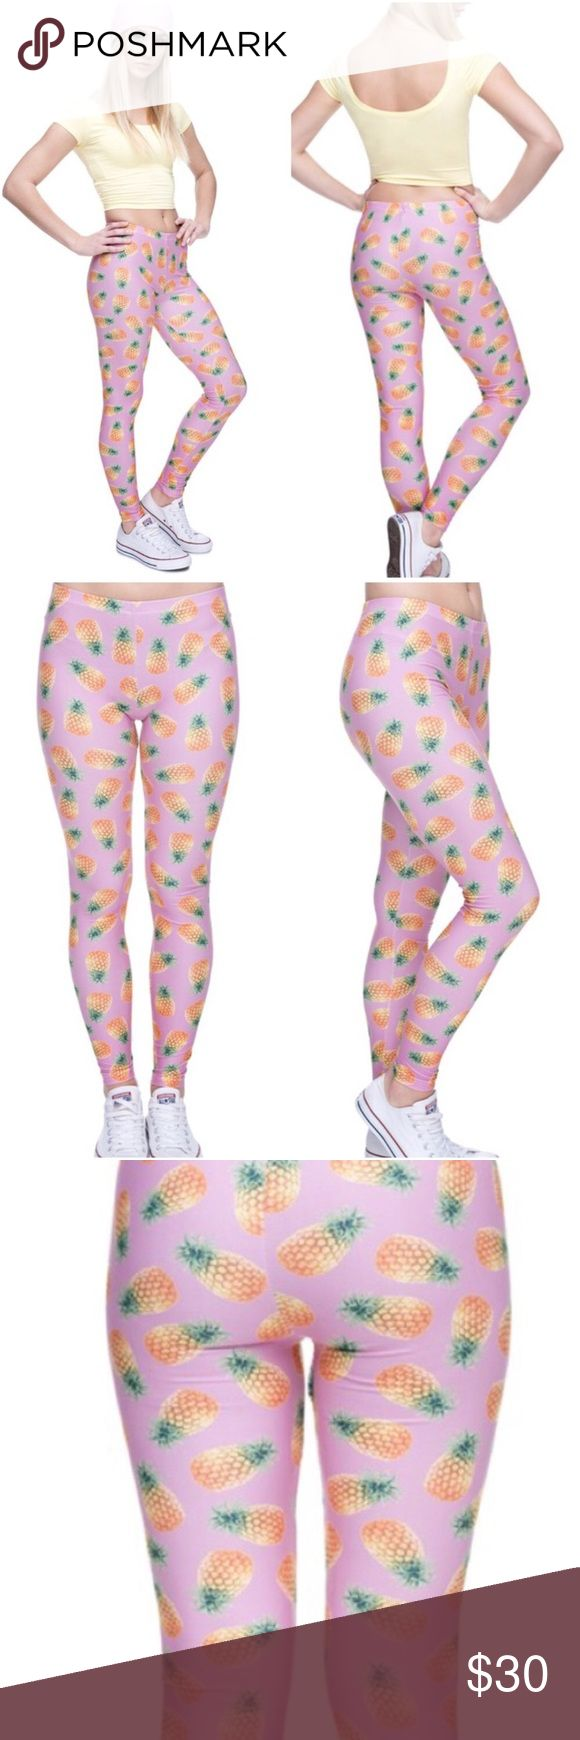 ⚡️SALE⚡️ 🍍Pretty Pink Pineapple Leggings 🍍 Adorable pink leggings with all over pineapple print. Super soft & extra stretchy poly/spandex blend makes these as comfy as they are cute. One size fits most. Bonus - With each purchase Twilight Gypsy Collective donates a portion of the proceeds to the American Heat + American Cancer Association 💕Promoting Positivity & Longevity💕 📷: Twilight Gypsy Co. Pants Leggings